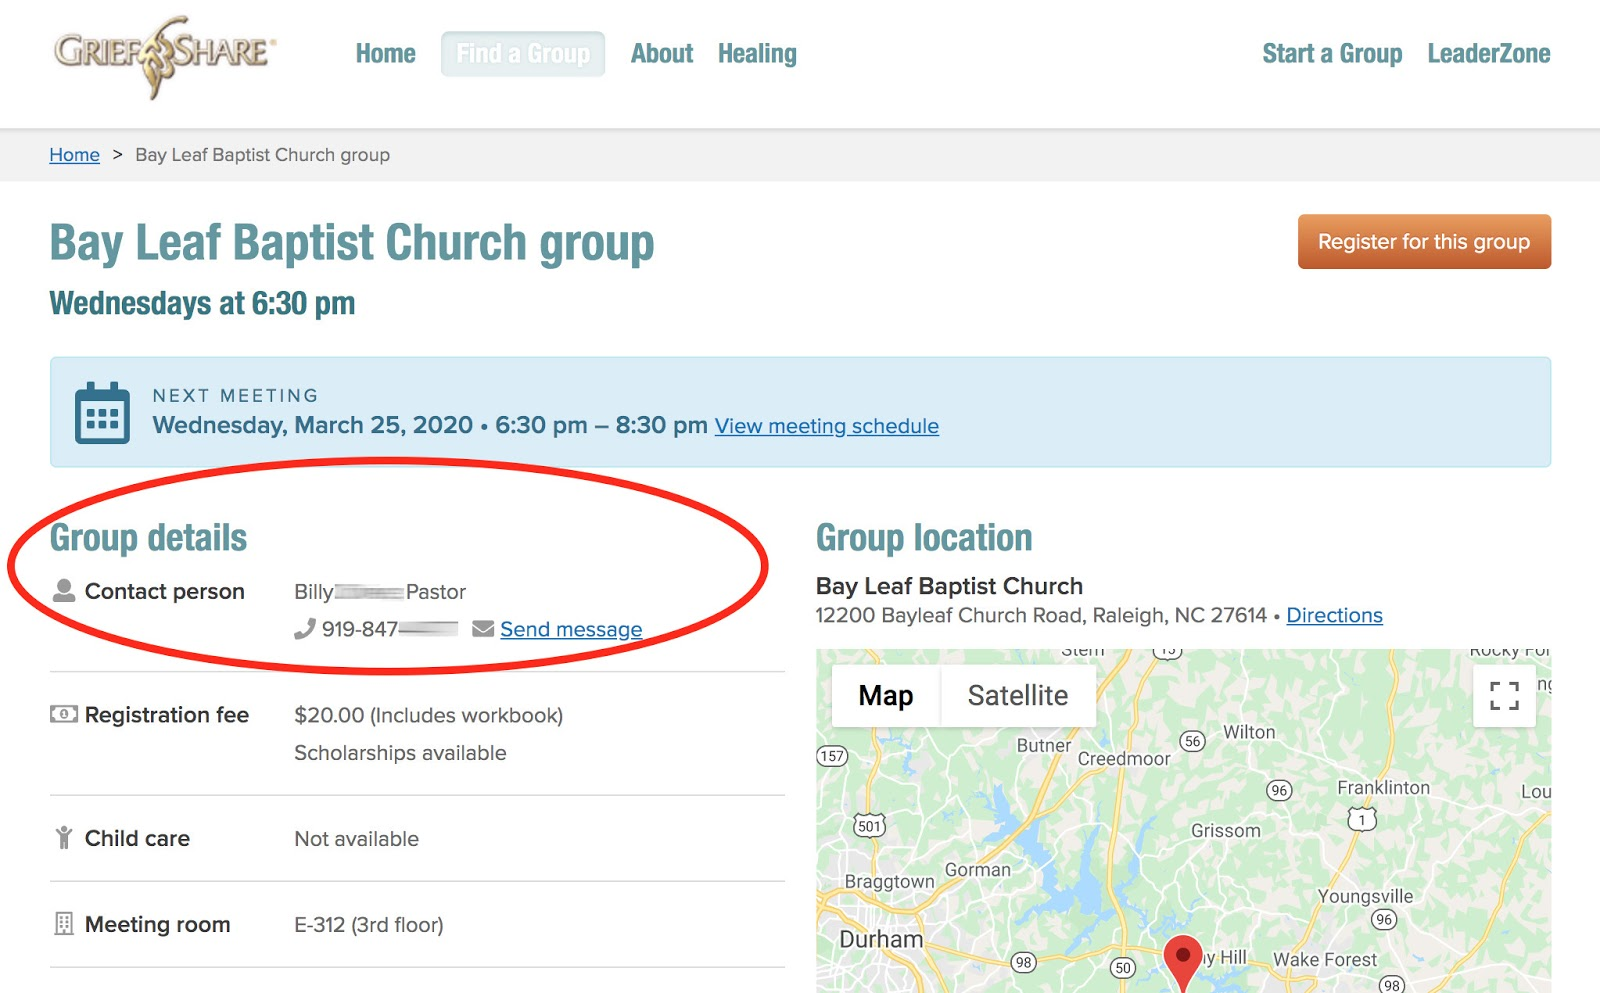 Group detail page